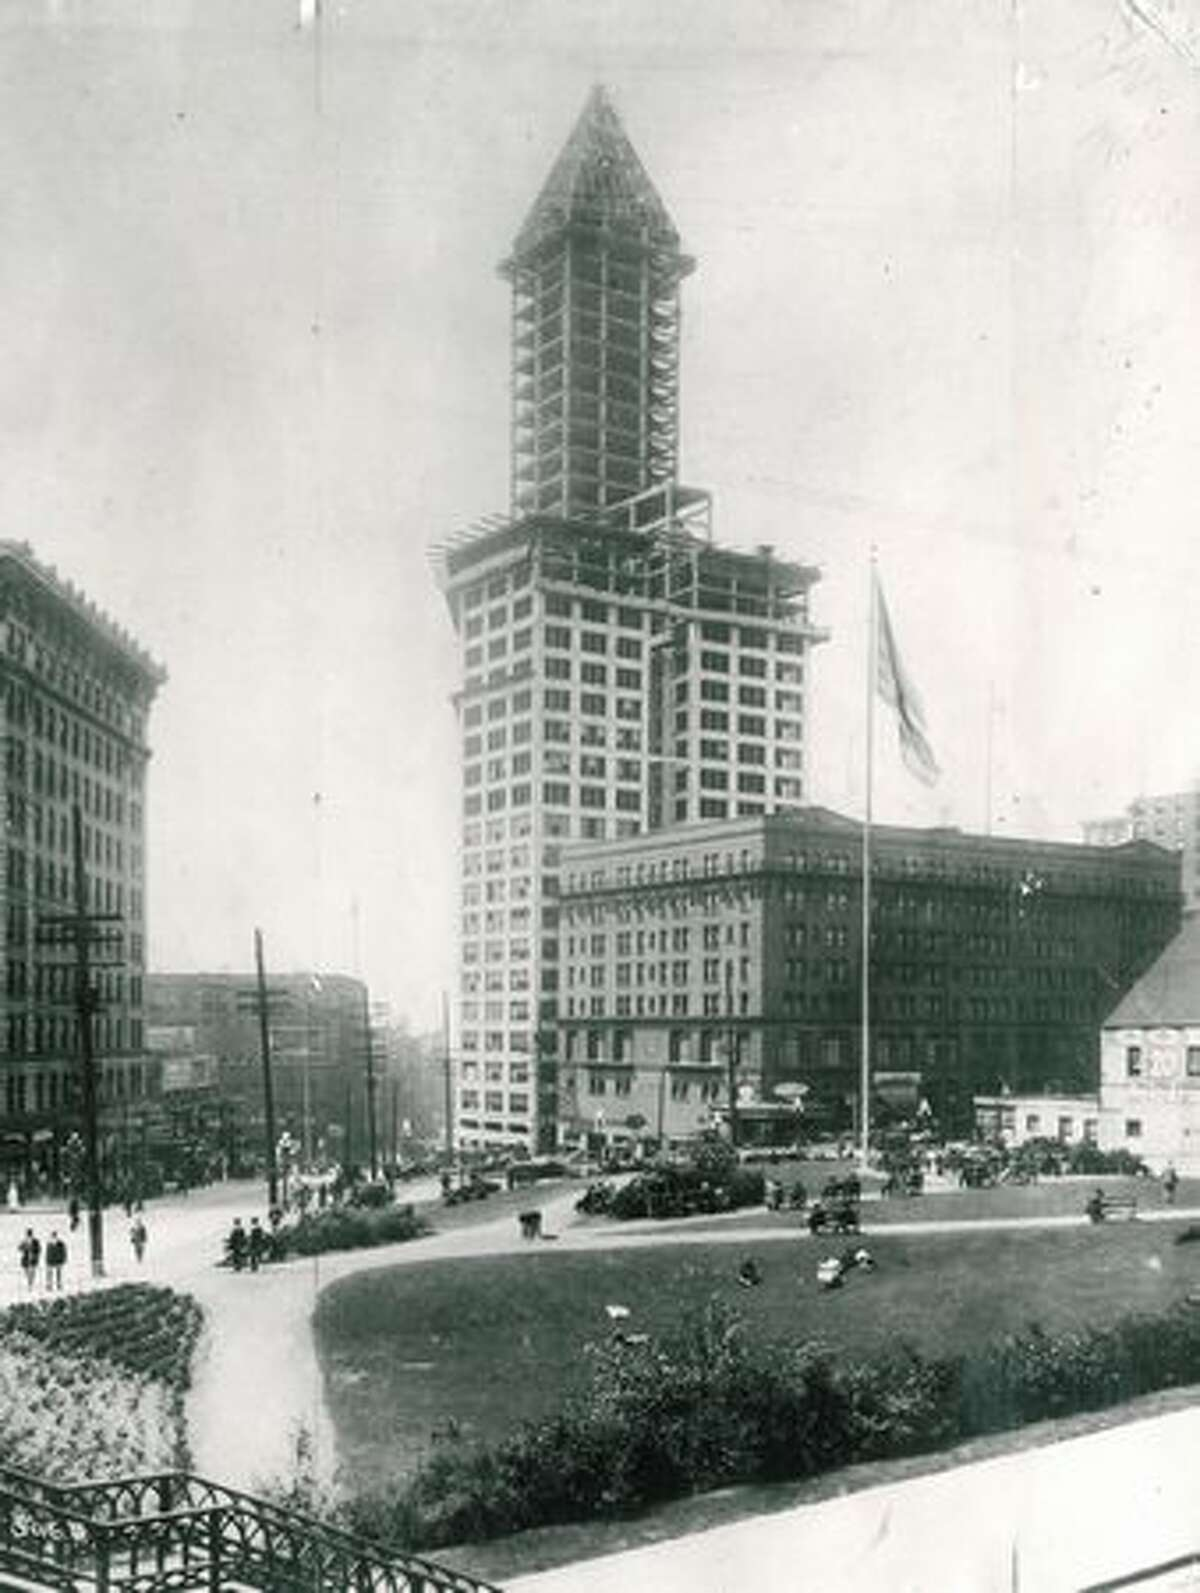 Seattle's skyline was definitely looking up as the 42-story Smith Tower was nearing completion. In 1914, it was the tallest west of the Mississippi River.